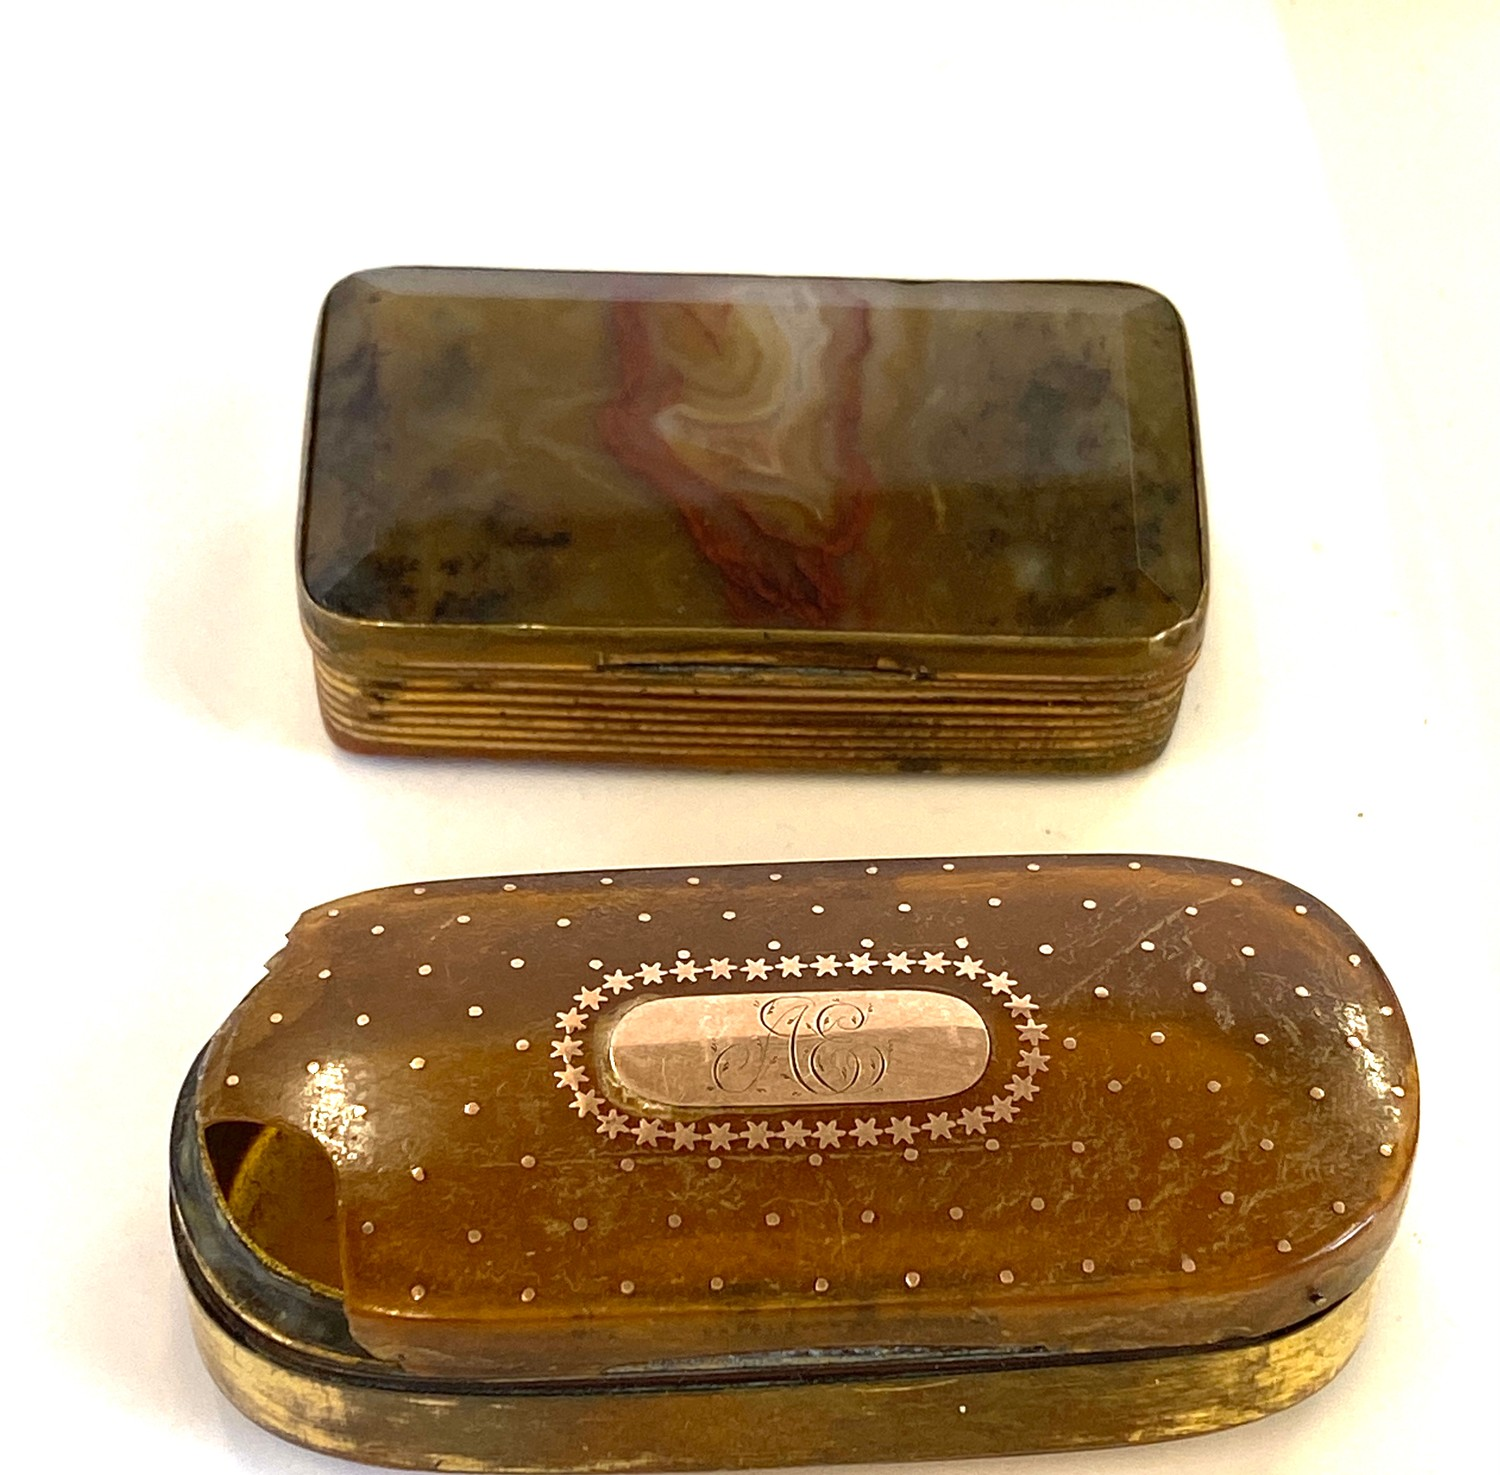 2 Antique snuff boxed gold a pique ware with damage, and one moss agate